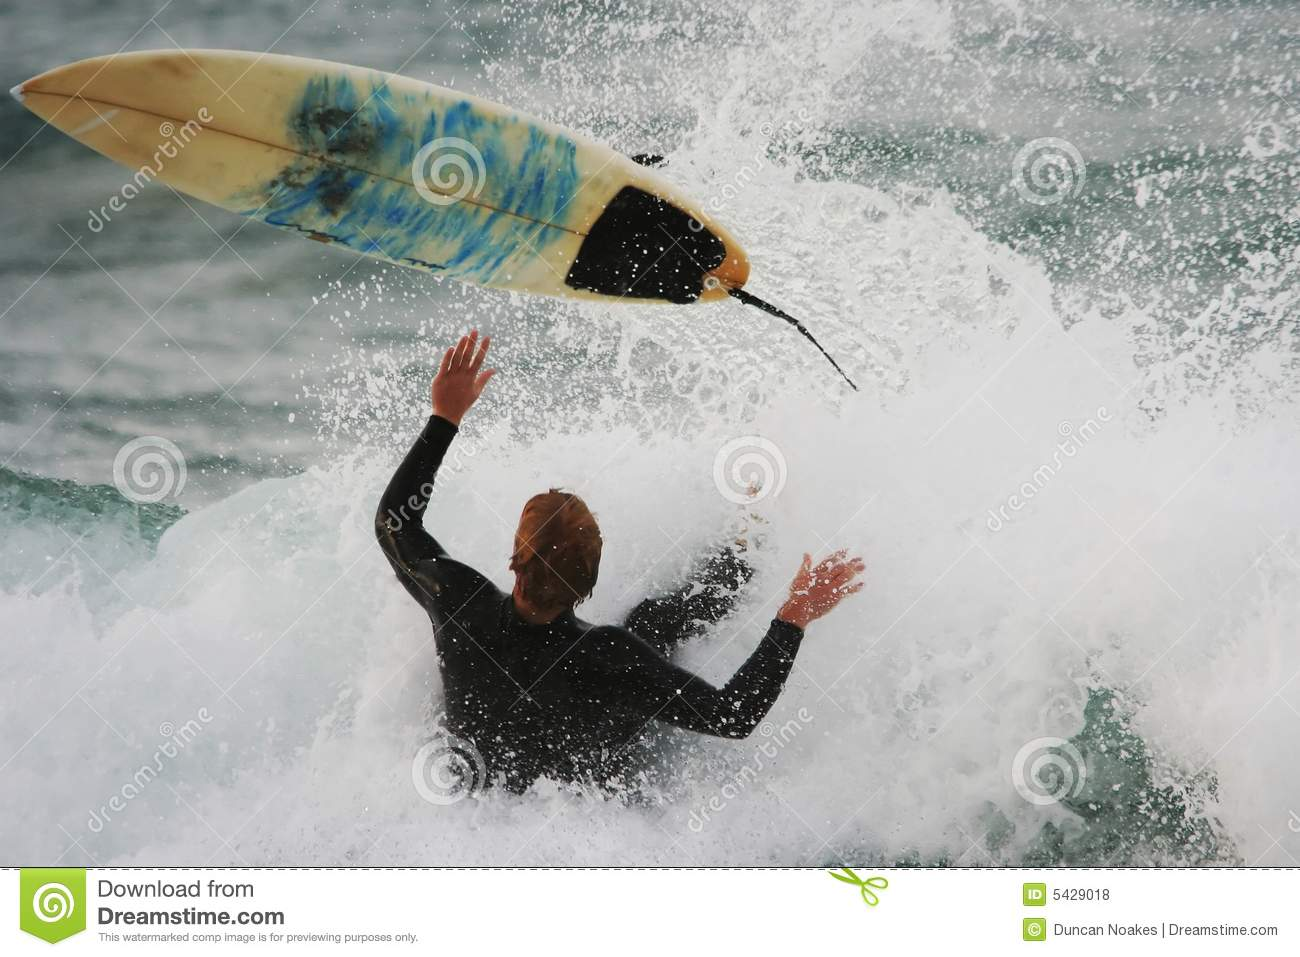 Wipeout surfant